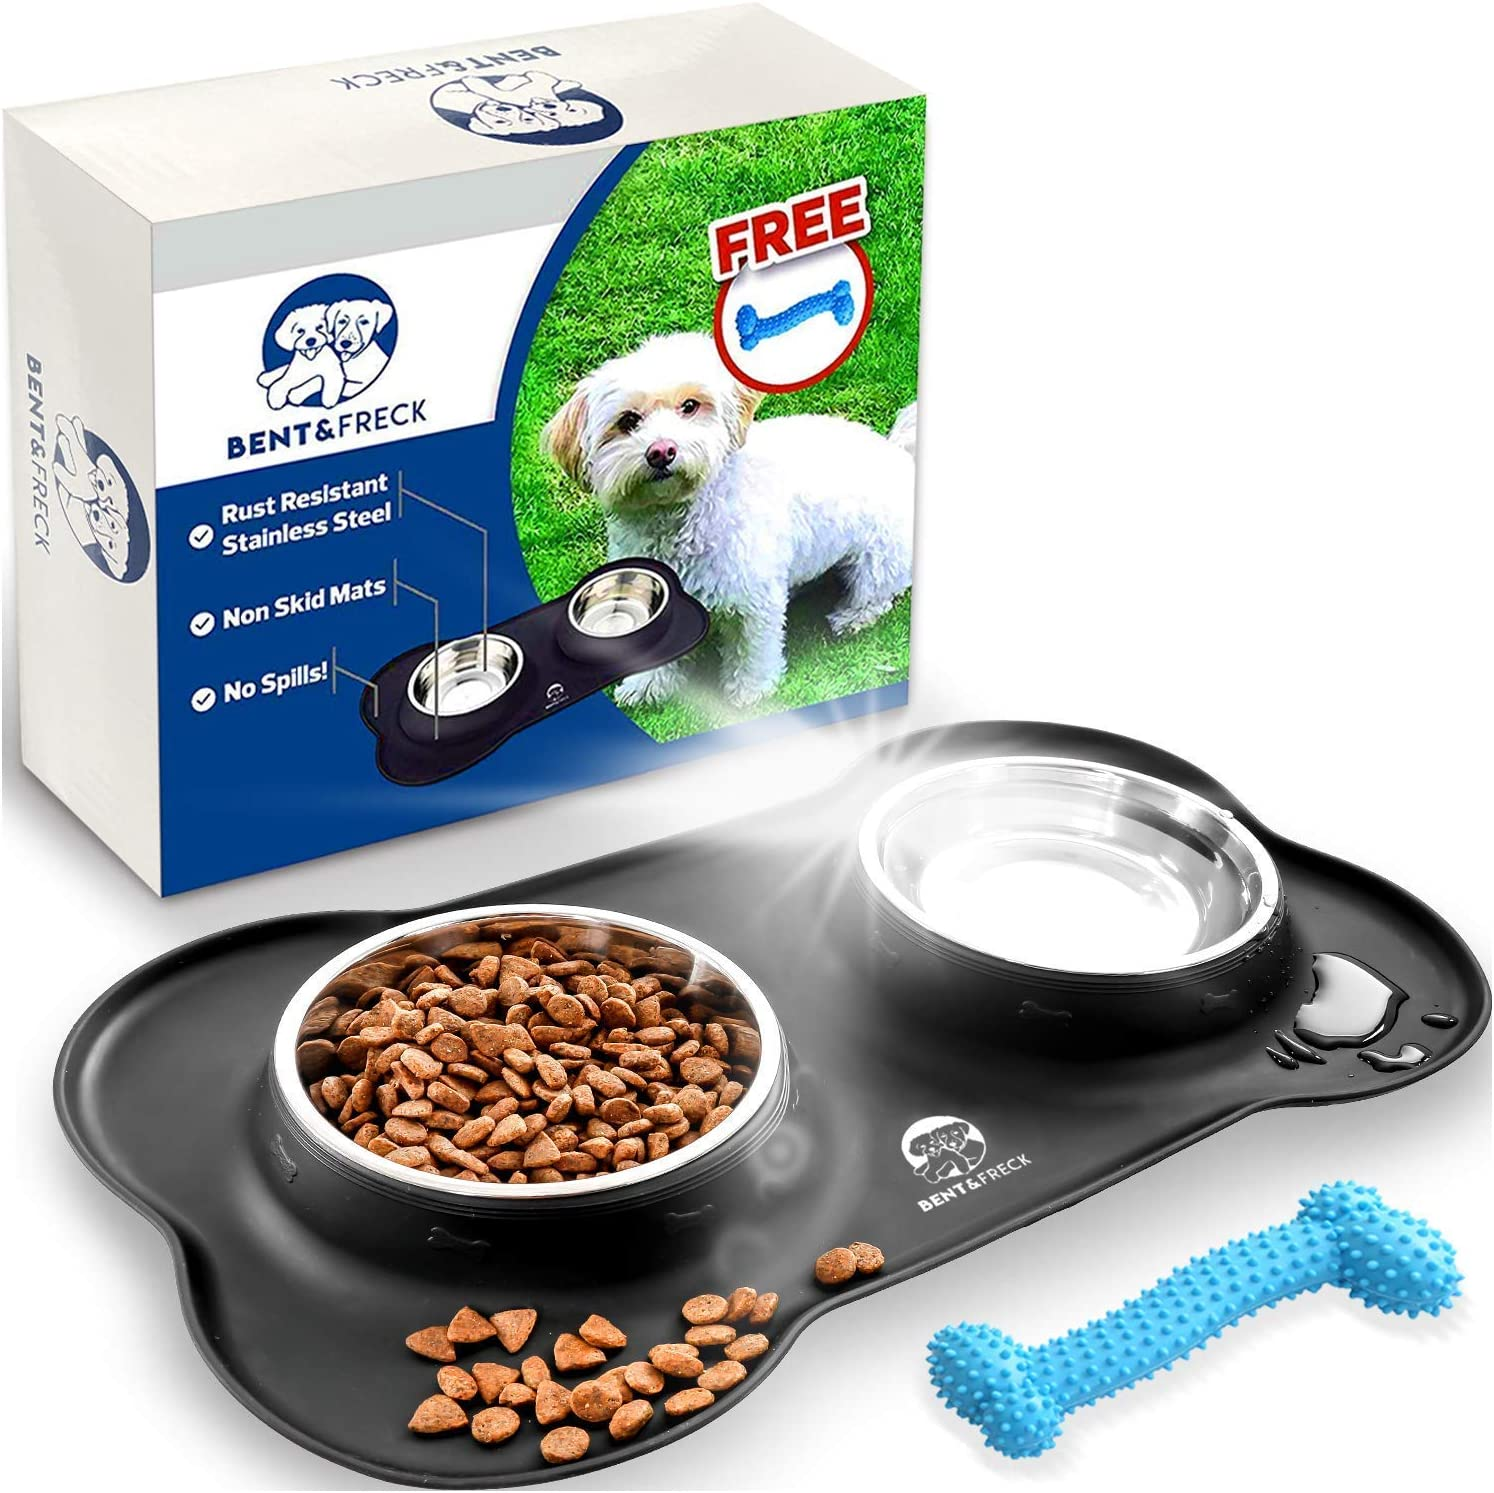 Bent & Freck Dog Bowl for Small Dogs & Puppies - Stainless Steel Water & Food Dish Set with a Non-Skid Mat - Rust Resistant, Prevents Spills & Tipping